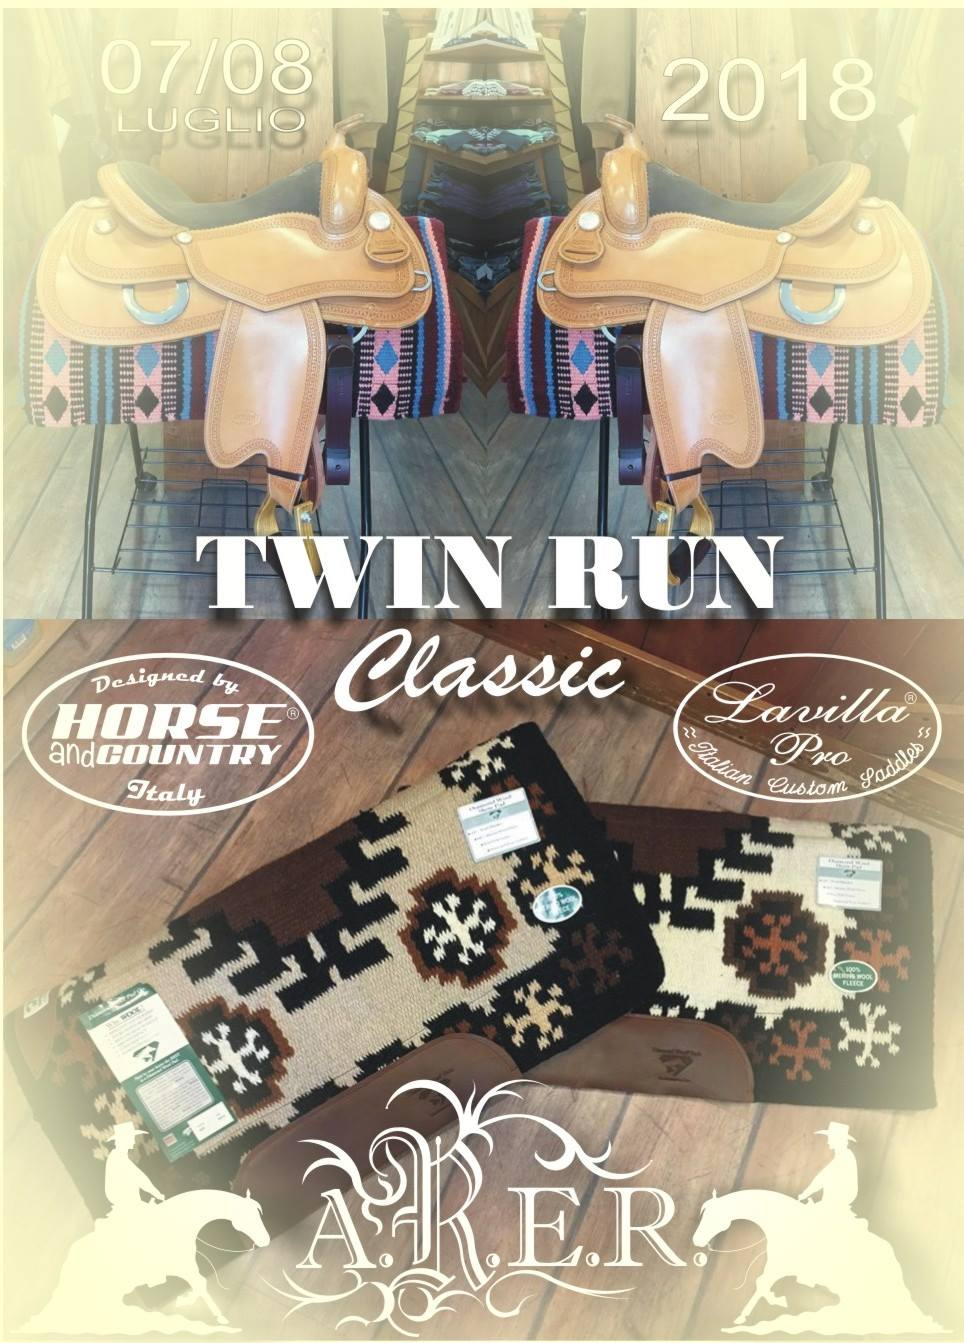 ARER, TAPPA 4^ CON TWIN RUN